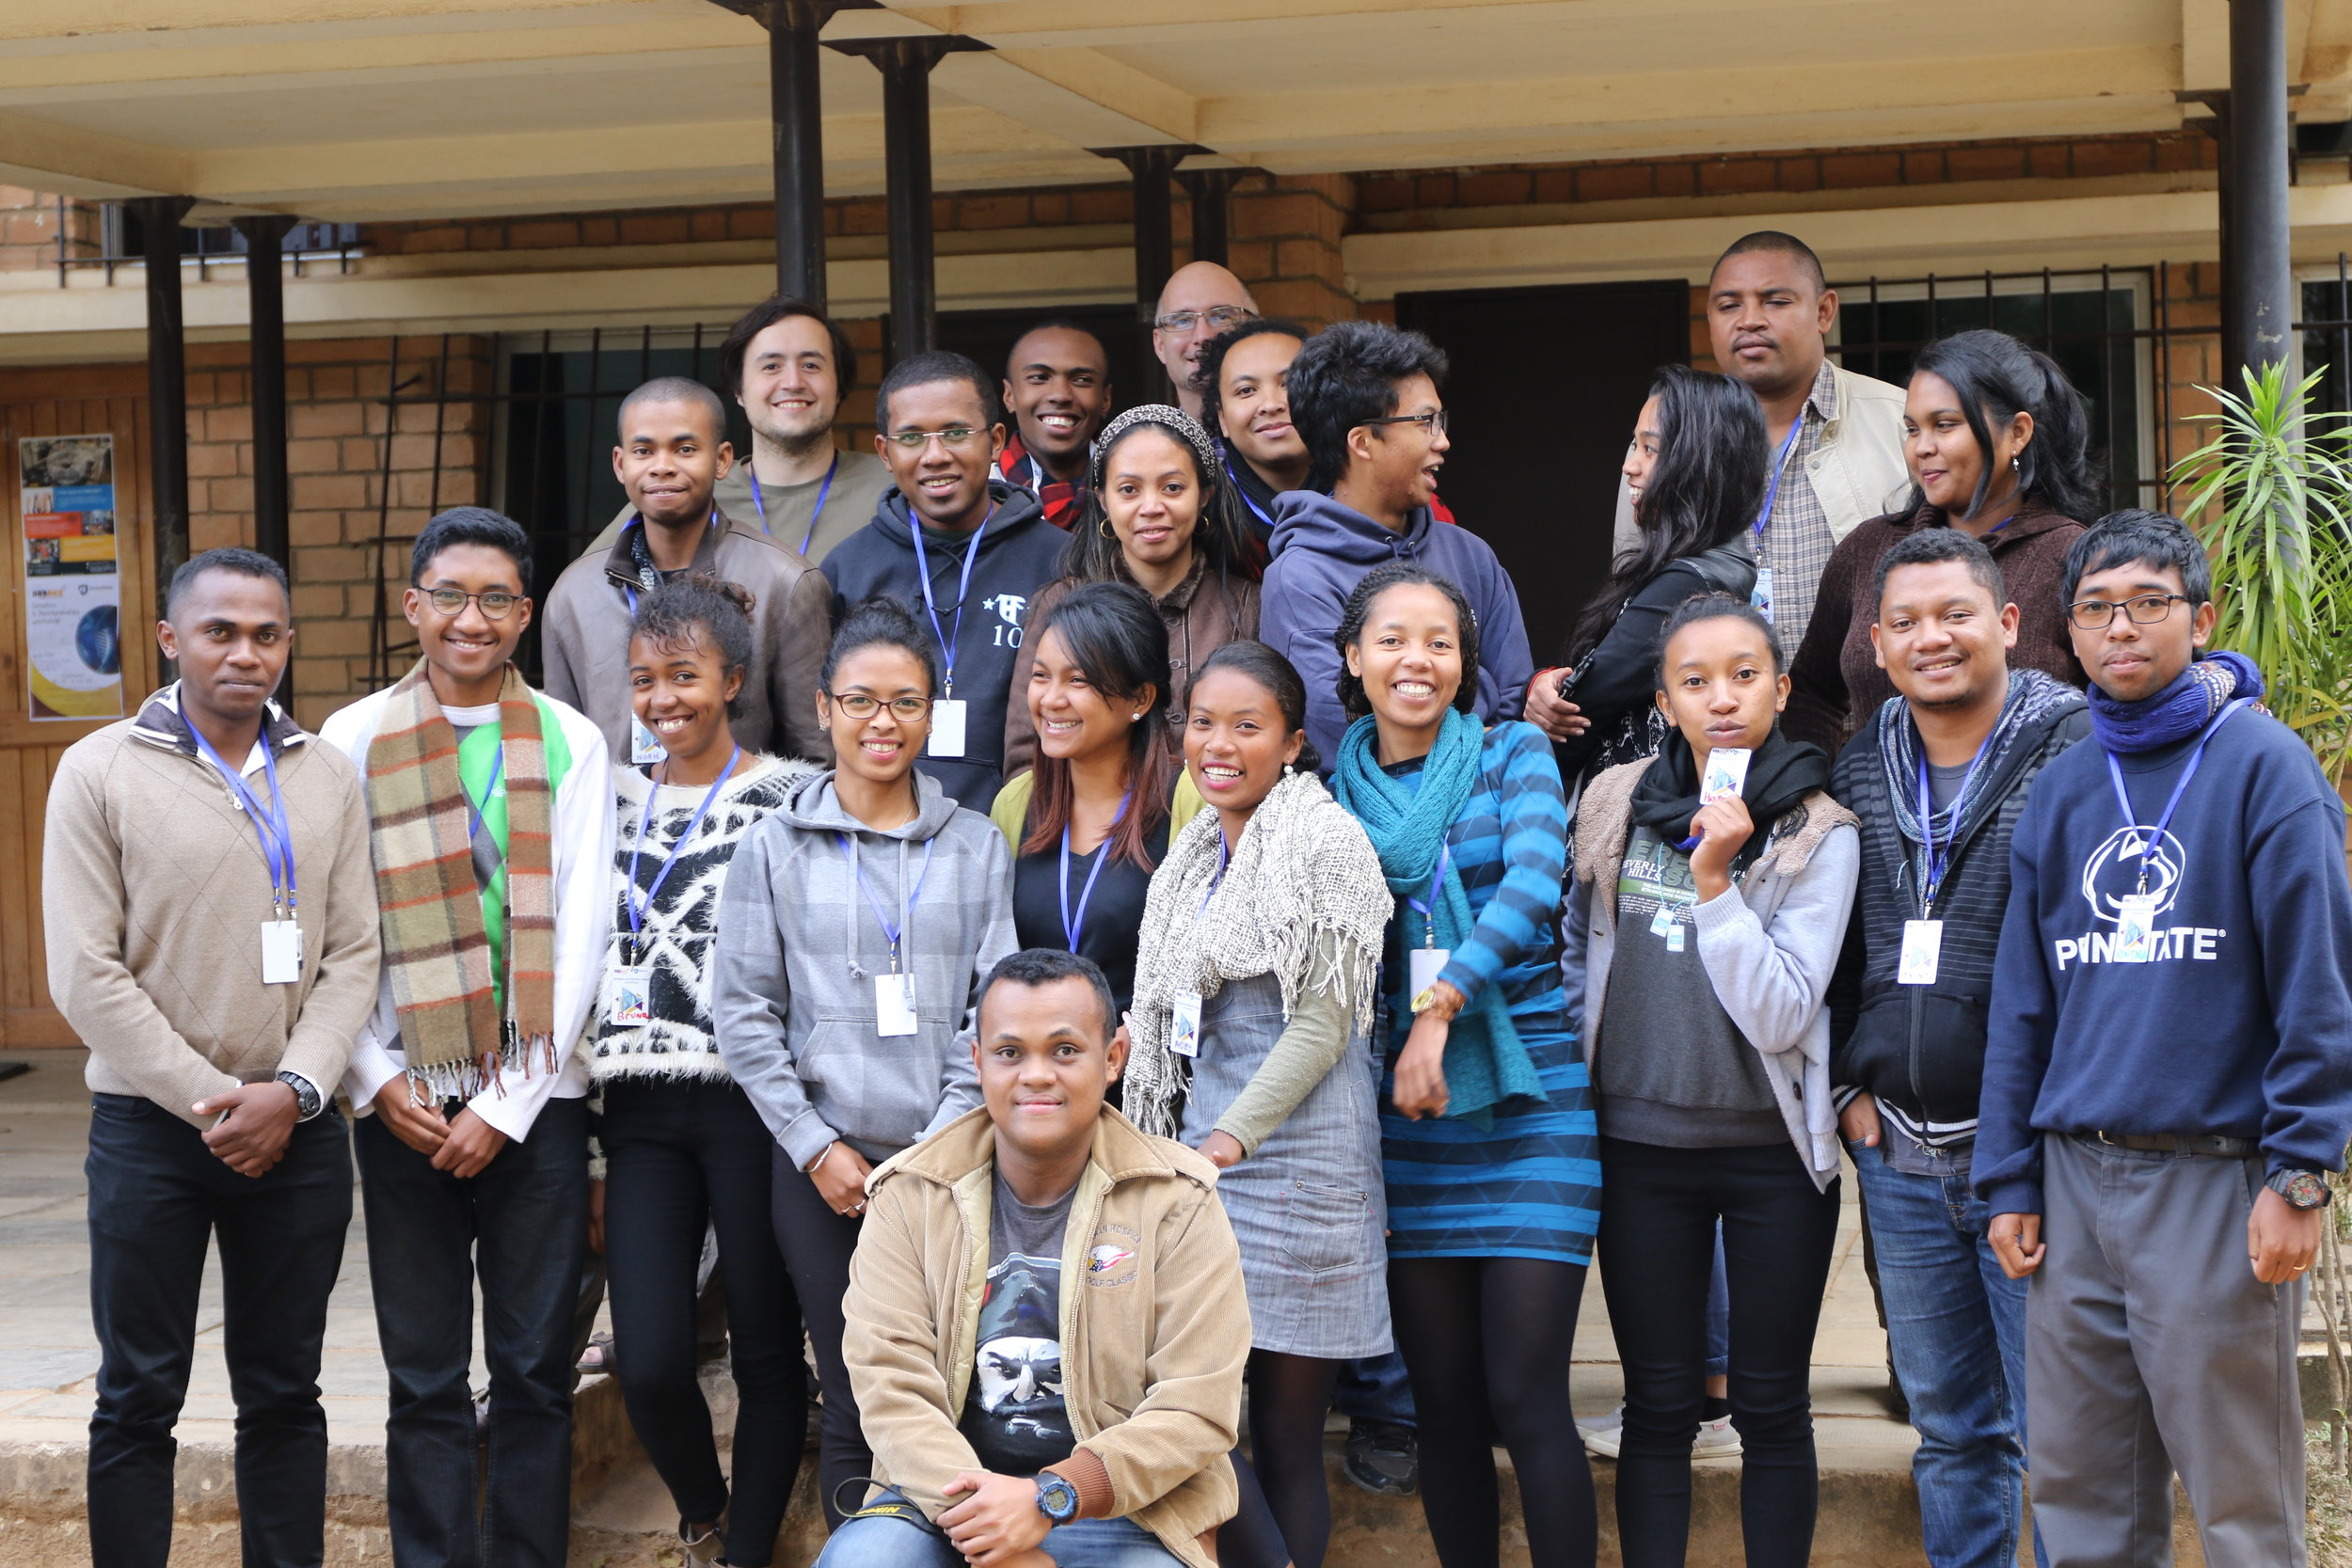 The inspiring group of participants from our inaugural Genetics and Bioinformatics Workshop in Antananarivo, Madagascar, June 2017. Instructors (all members of our lab) were Heritiana Randrianatoandro (far left) Rindra Rakotoarivony (far right), and Richard Bankoff and Dr. Perry (both in the very back row).